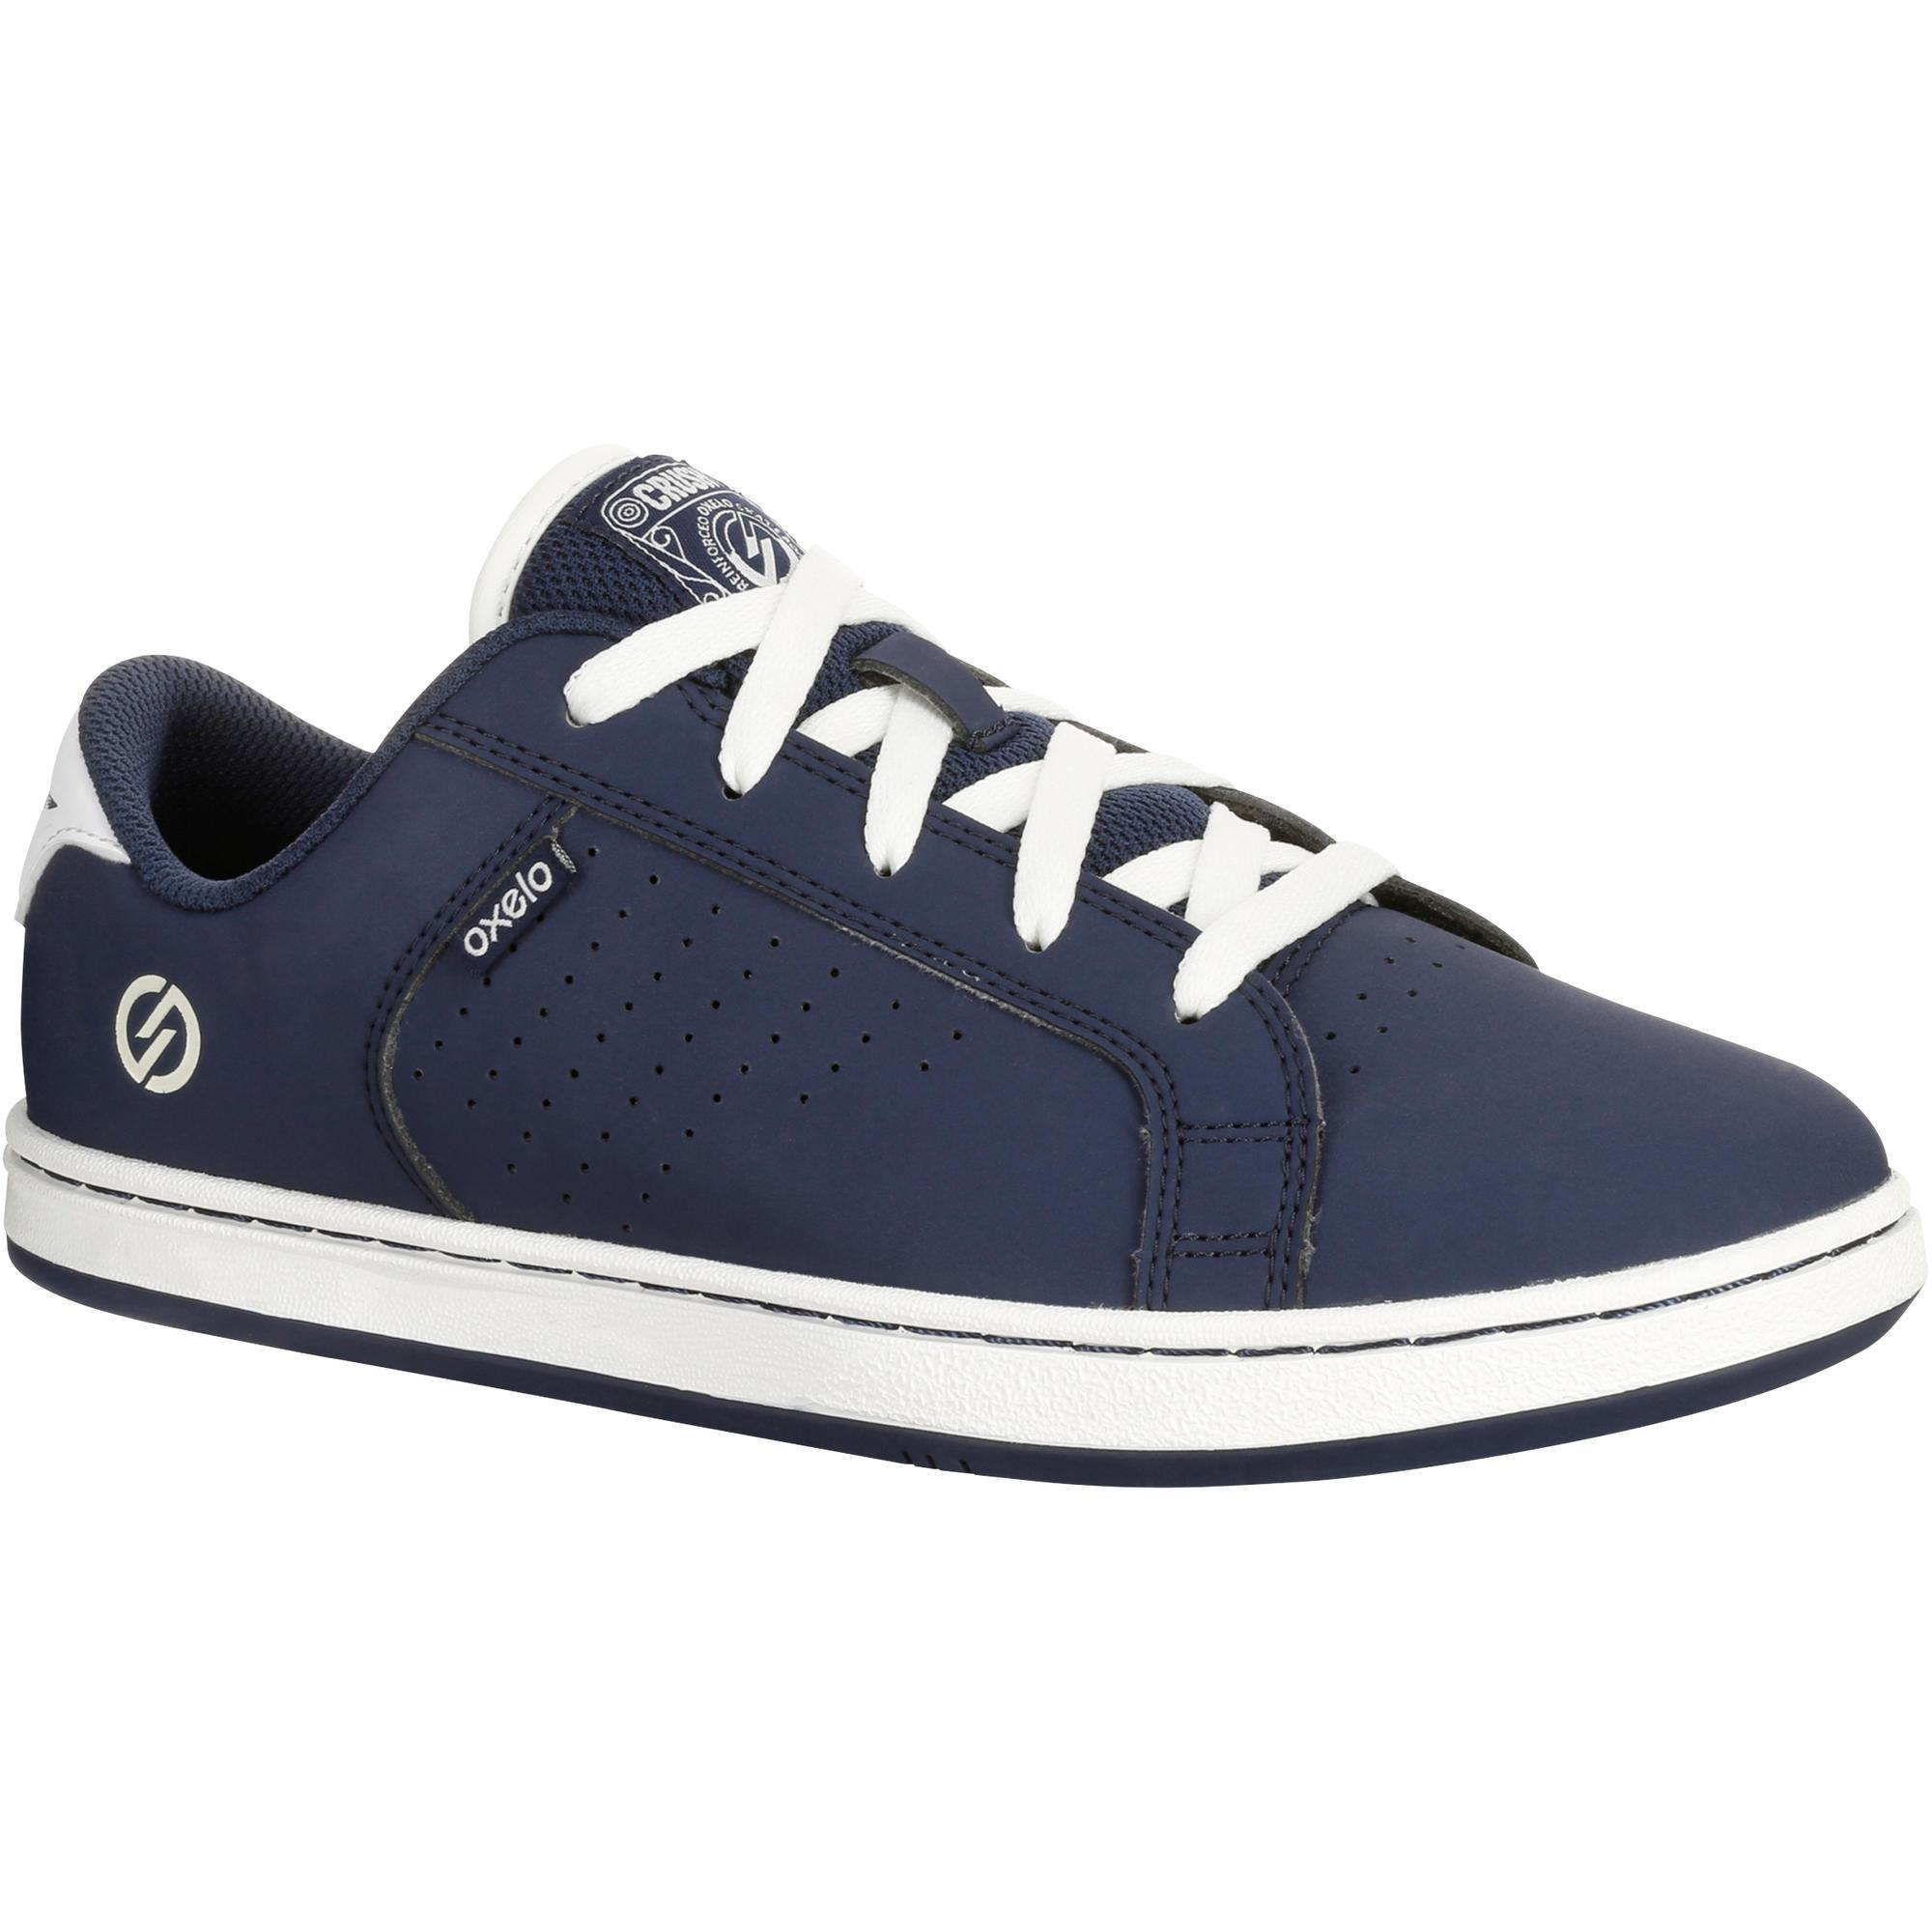 Chaussures oxelo - Chaussure enfant decathlon ...